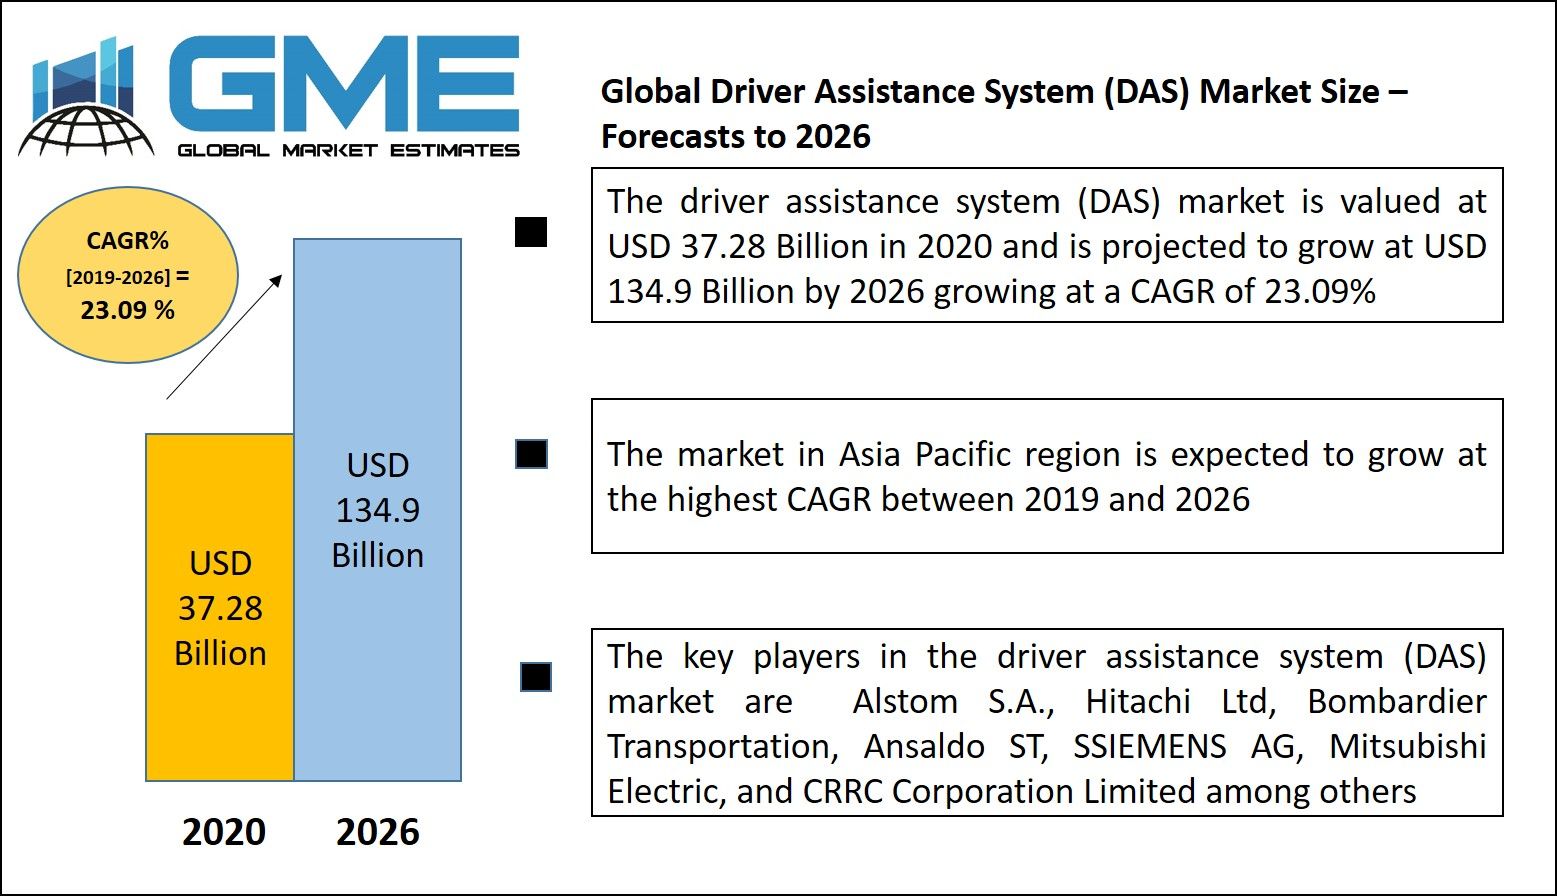 Global Driver Assistance System (DAS) Market Size – Forecasts to 2026